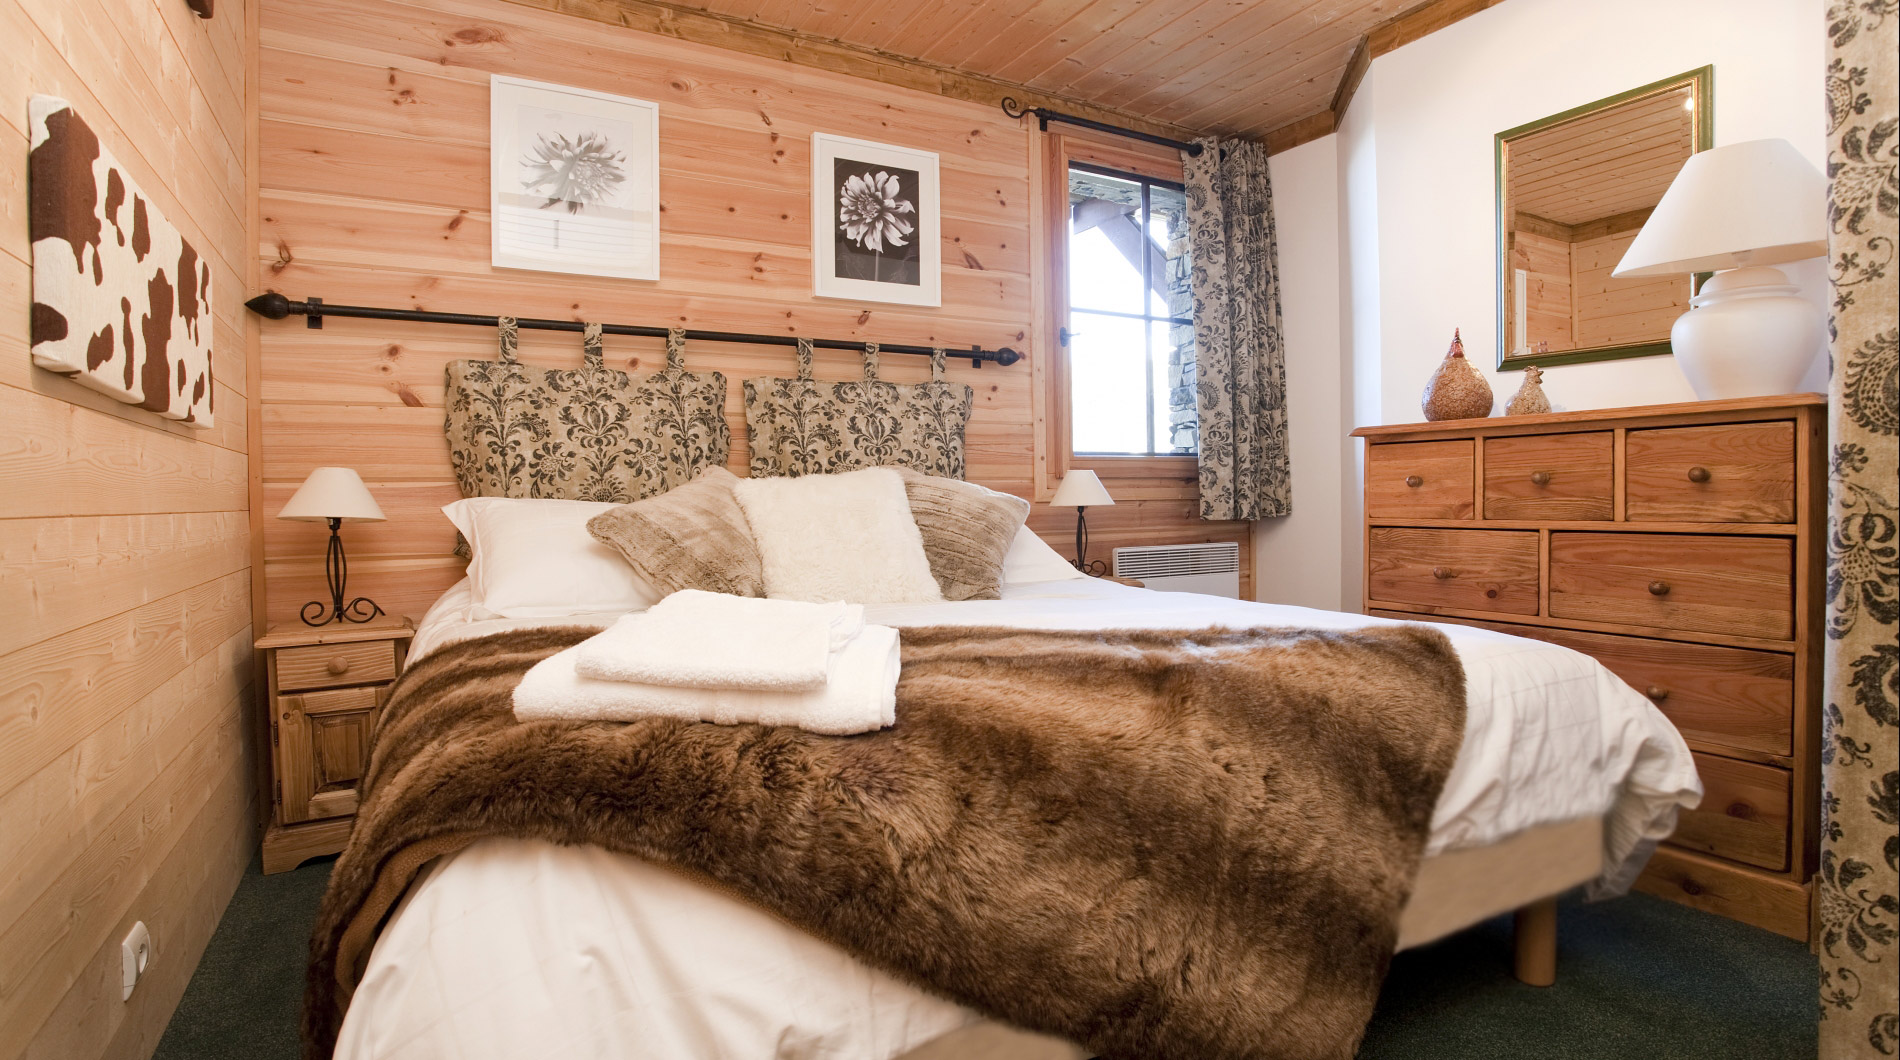 Example of Chalet Johanna *****'s welcoming bedrooms, we accommodate up to 10